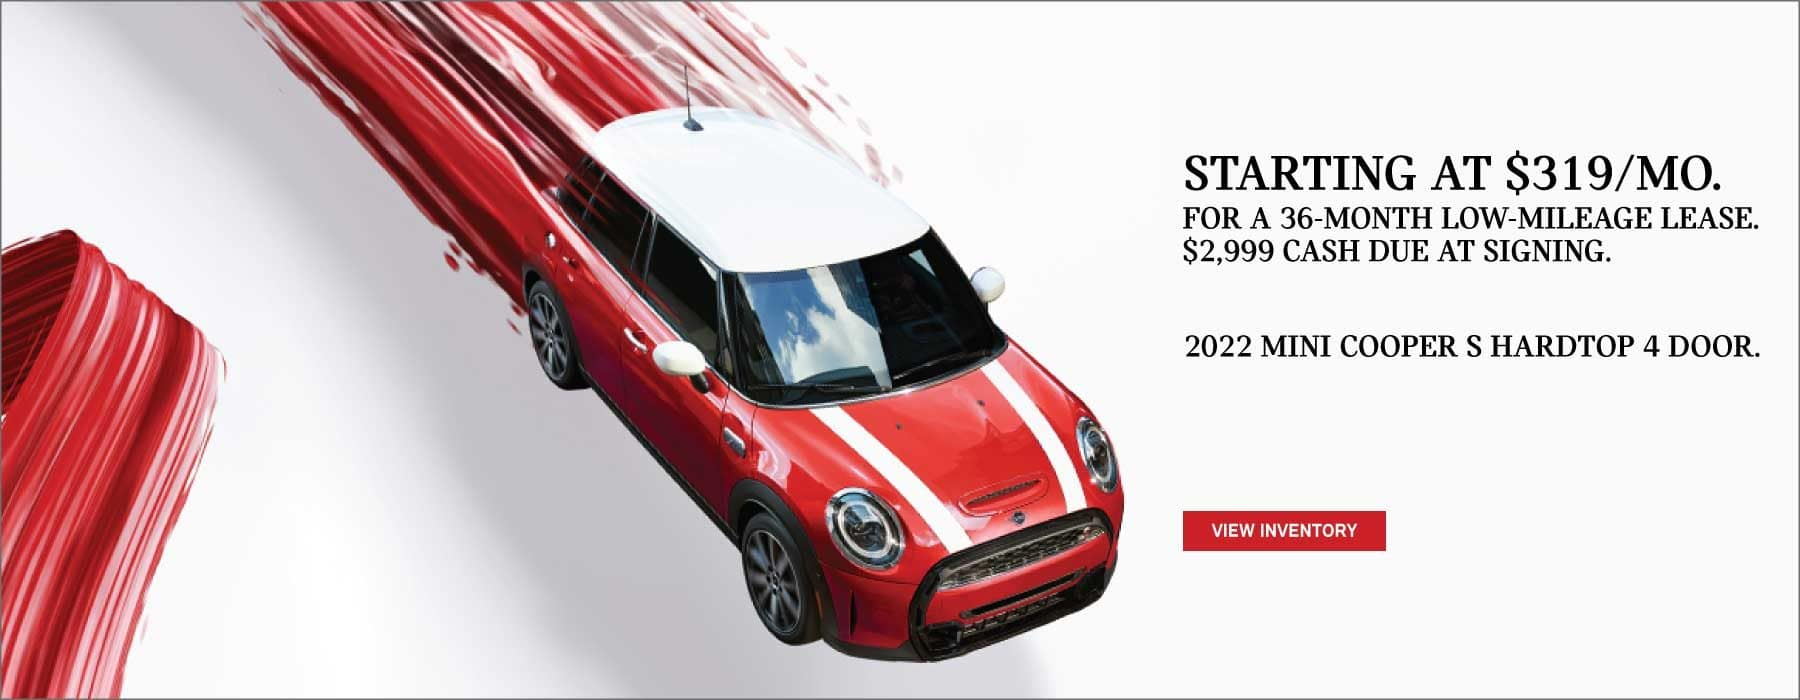 LEASE A 2022 MINI COOPER S HARDTOP 4 DOOR FOR $319 A MONTH FOR A 36 MONTH LOW MILEAGE LEASE. $2,999 CASH DUE AT SIGNING. VIEW INVENTORY BUTTON.